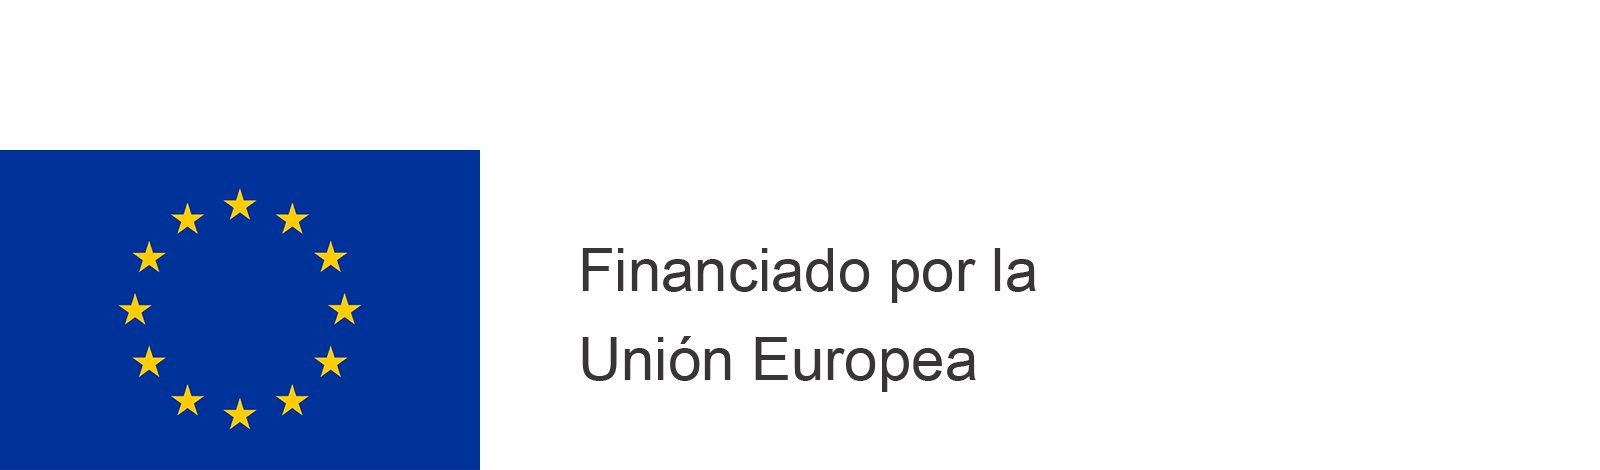 Financiado por la Unión Europea